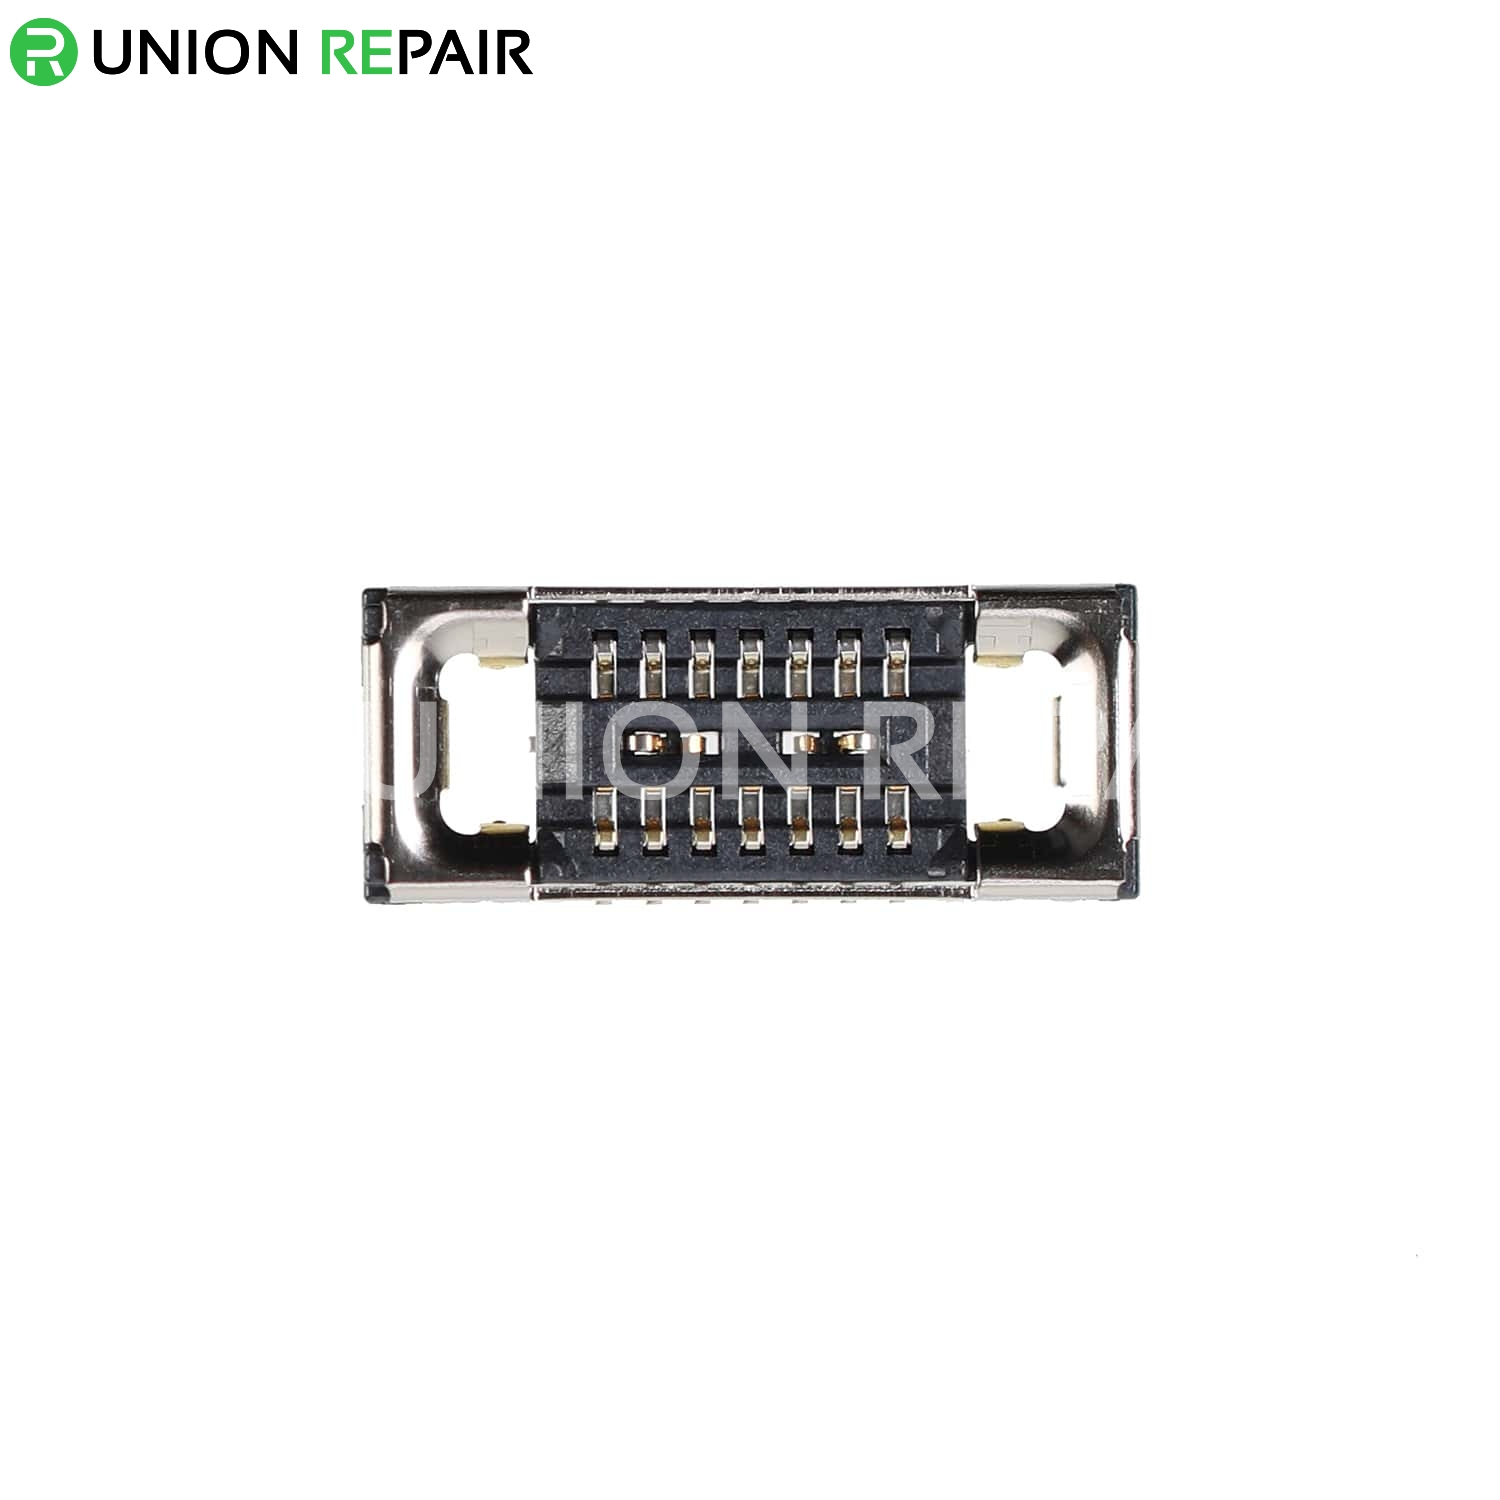 Replacement for iPhone XS Top Cellular Antenna Connector Port Onboard